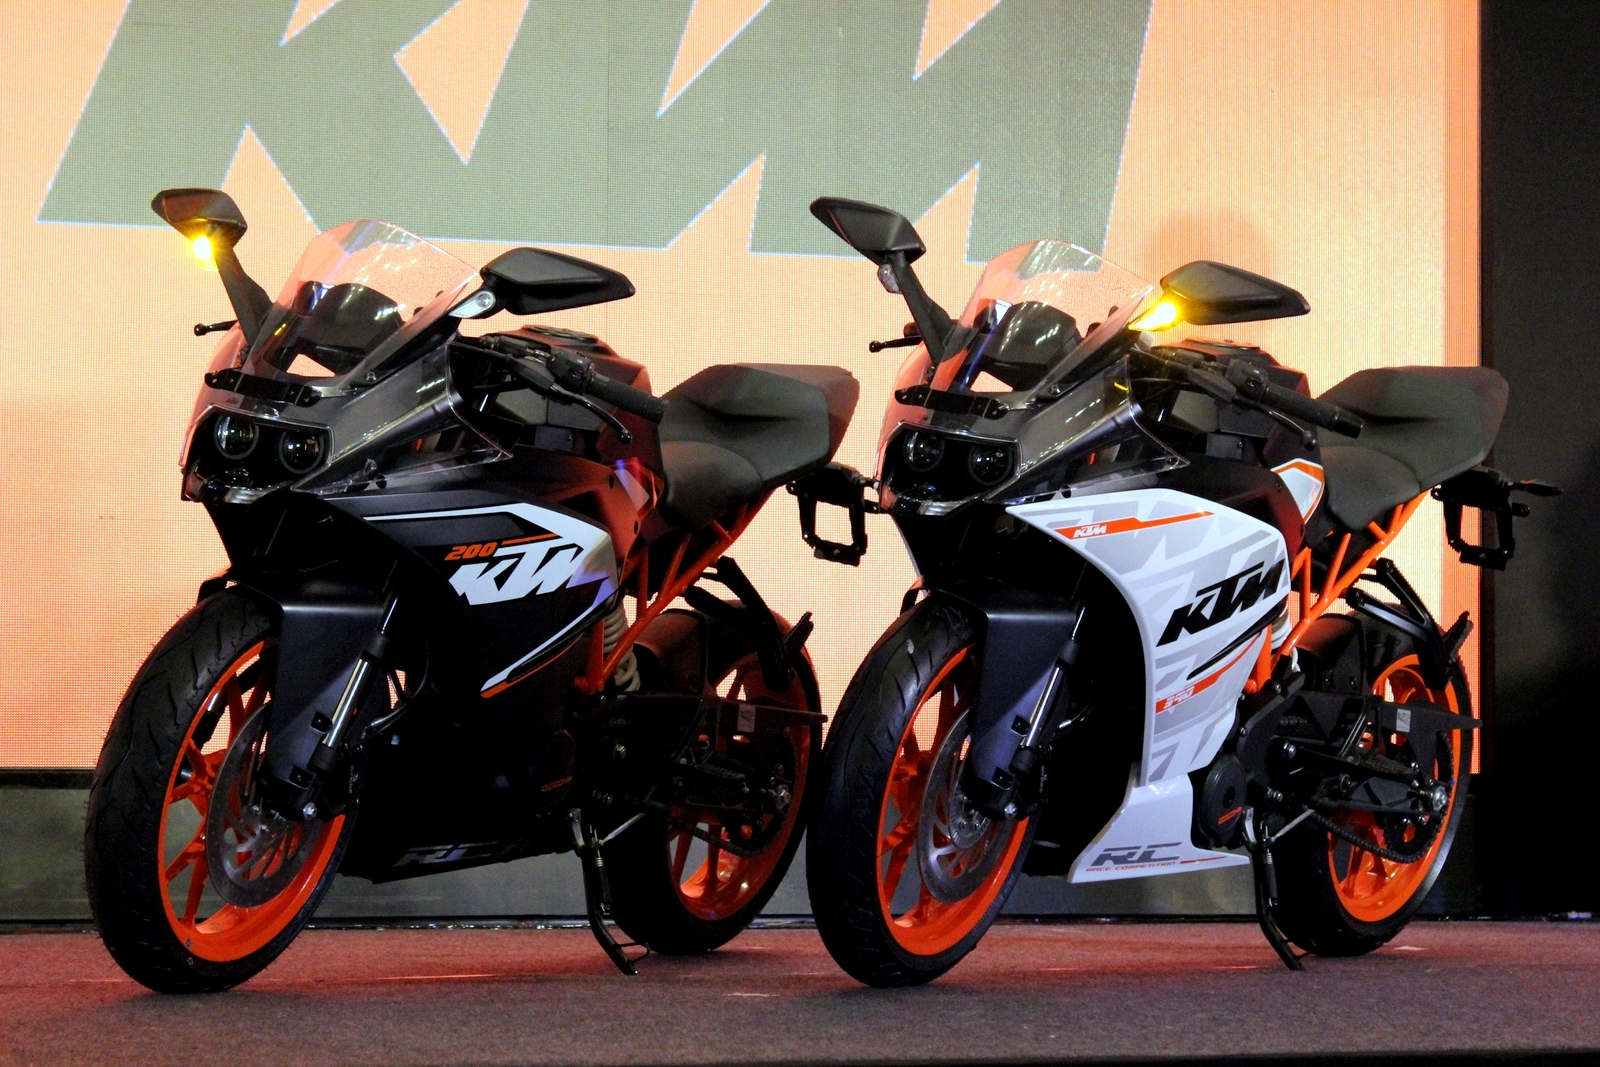 KTM RC390 and RC200 launched in India at Rs 2.05 lakh and Rs 1.60 lakh (Ex-Showroom, Delhi)